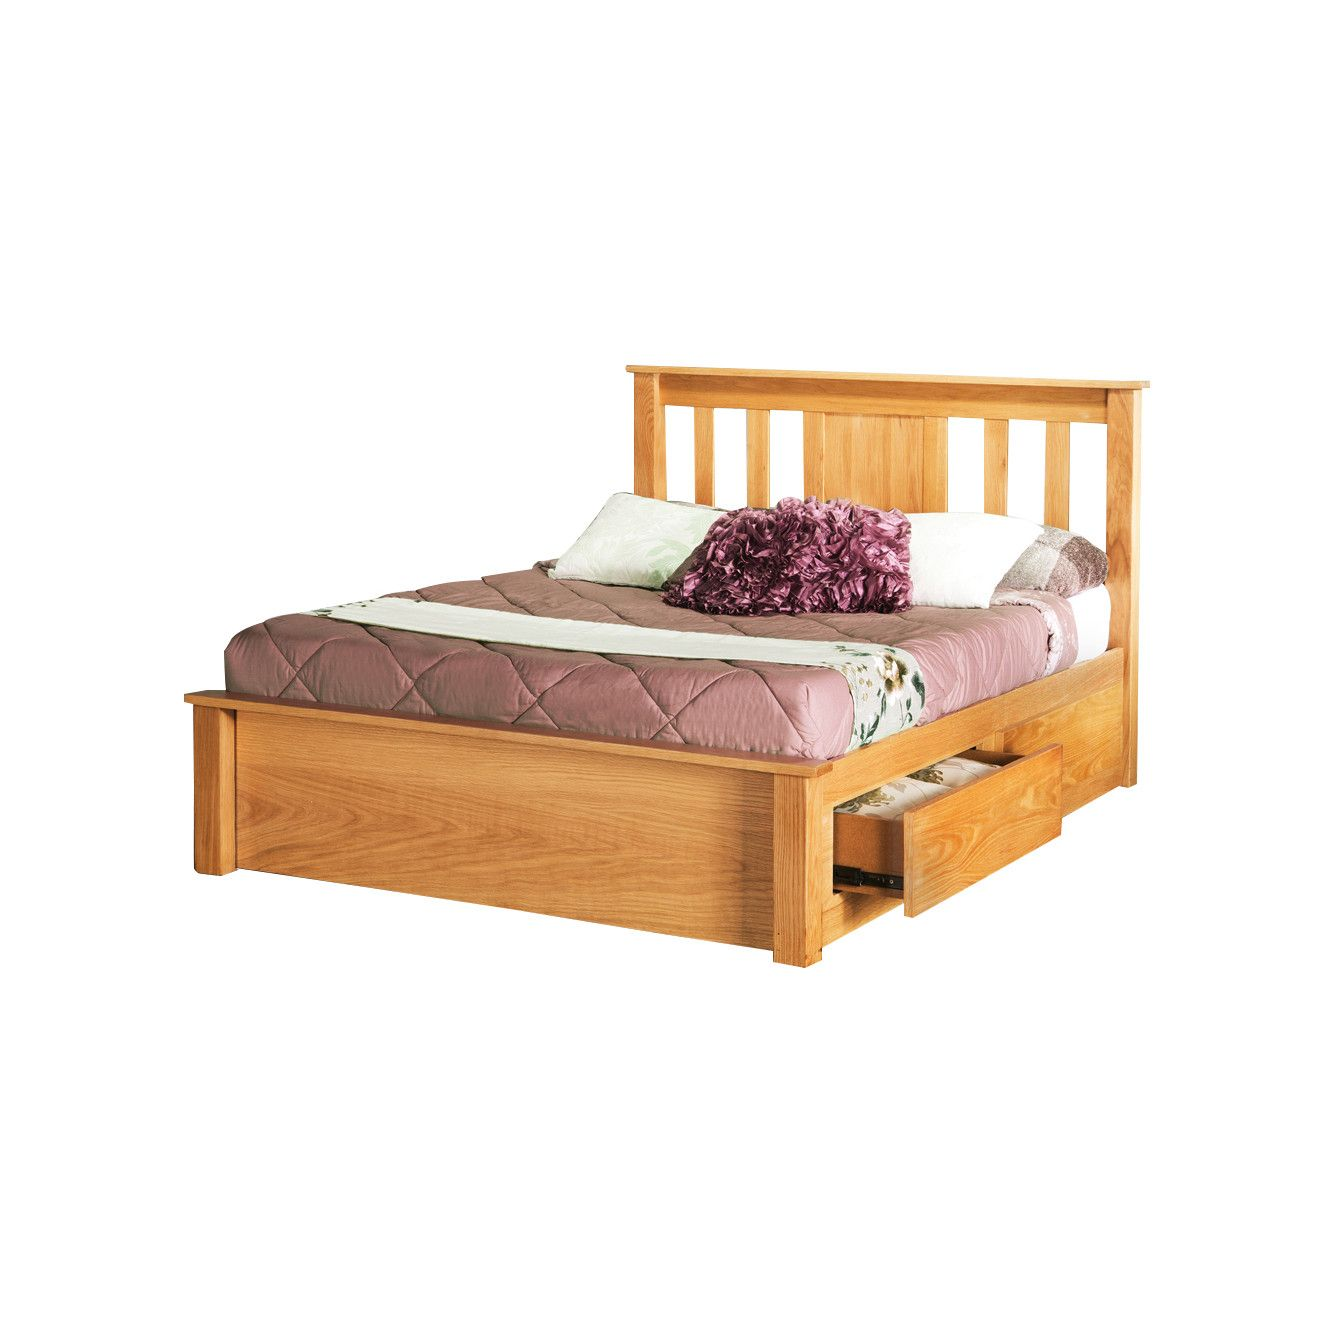 Love the Stoarge -- Opus Double Size Wooden Bed Frame with 4 Drawers ...